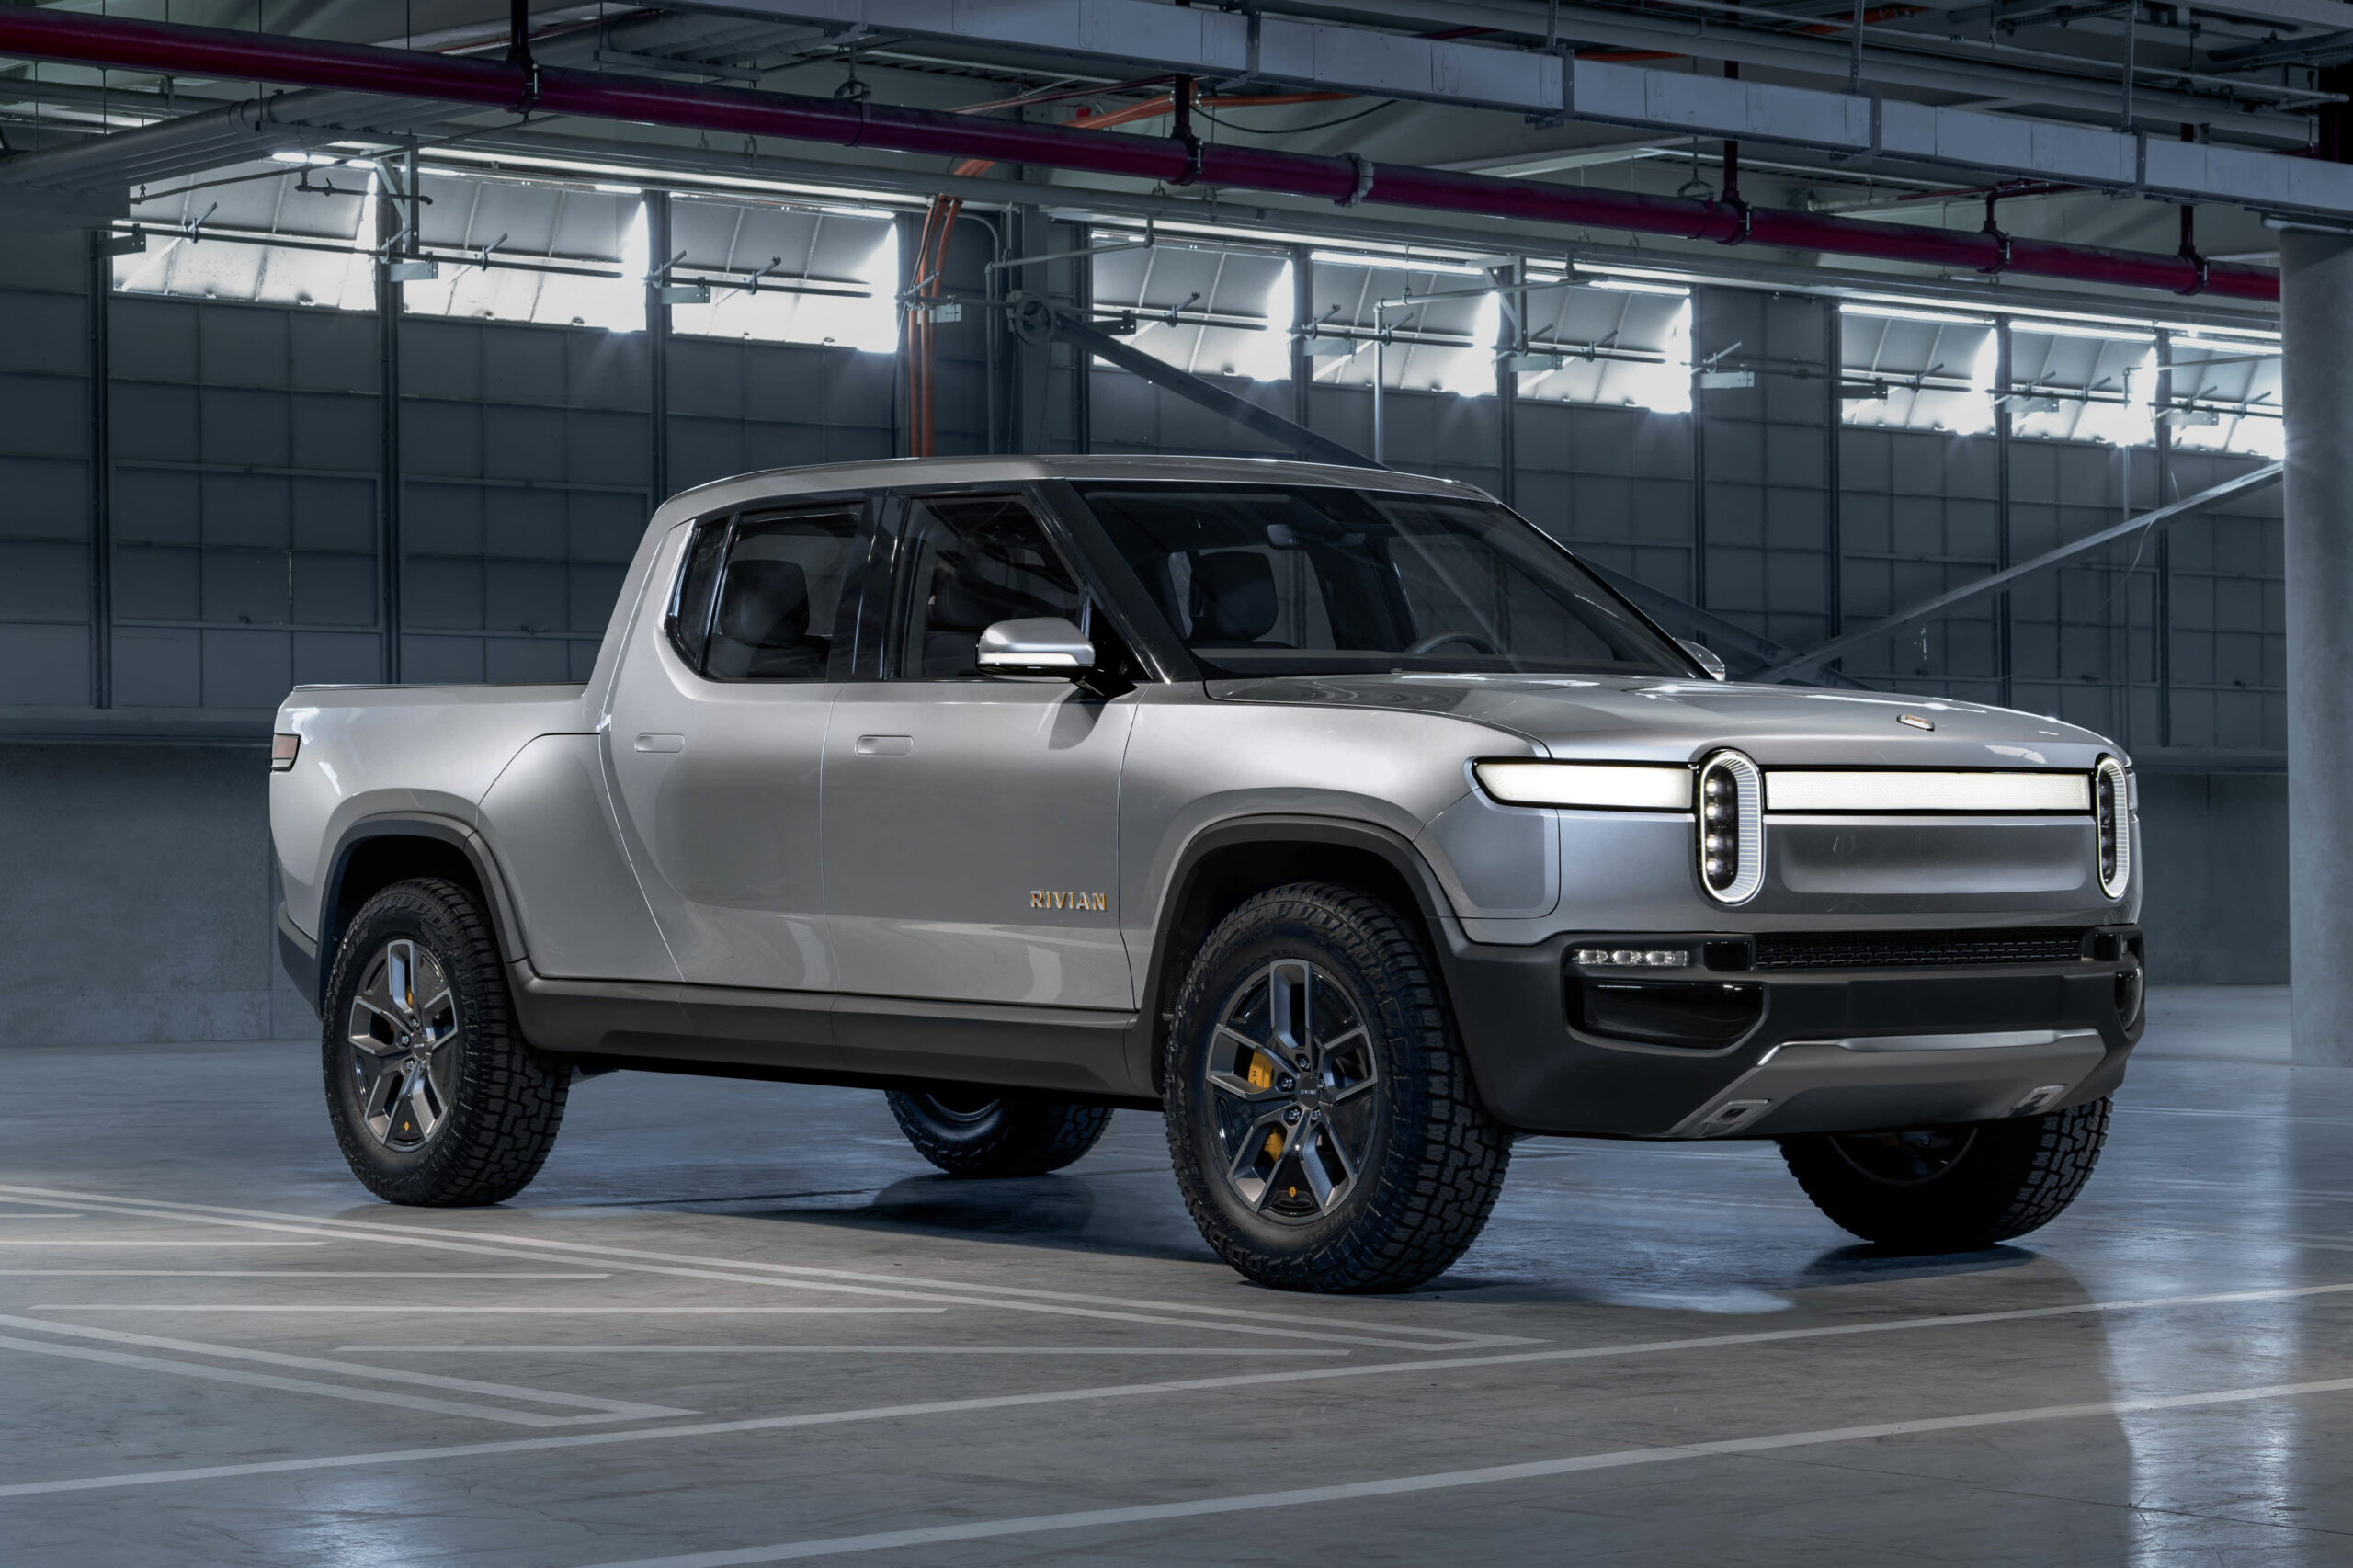 EV start-up Rivian beats Tesla, GM, Ford as first automaker to produce electric pickup